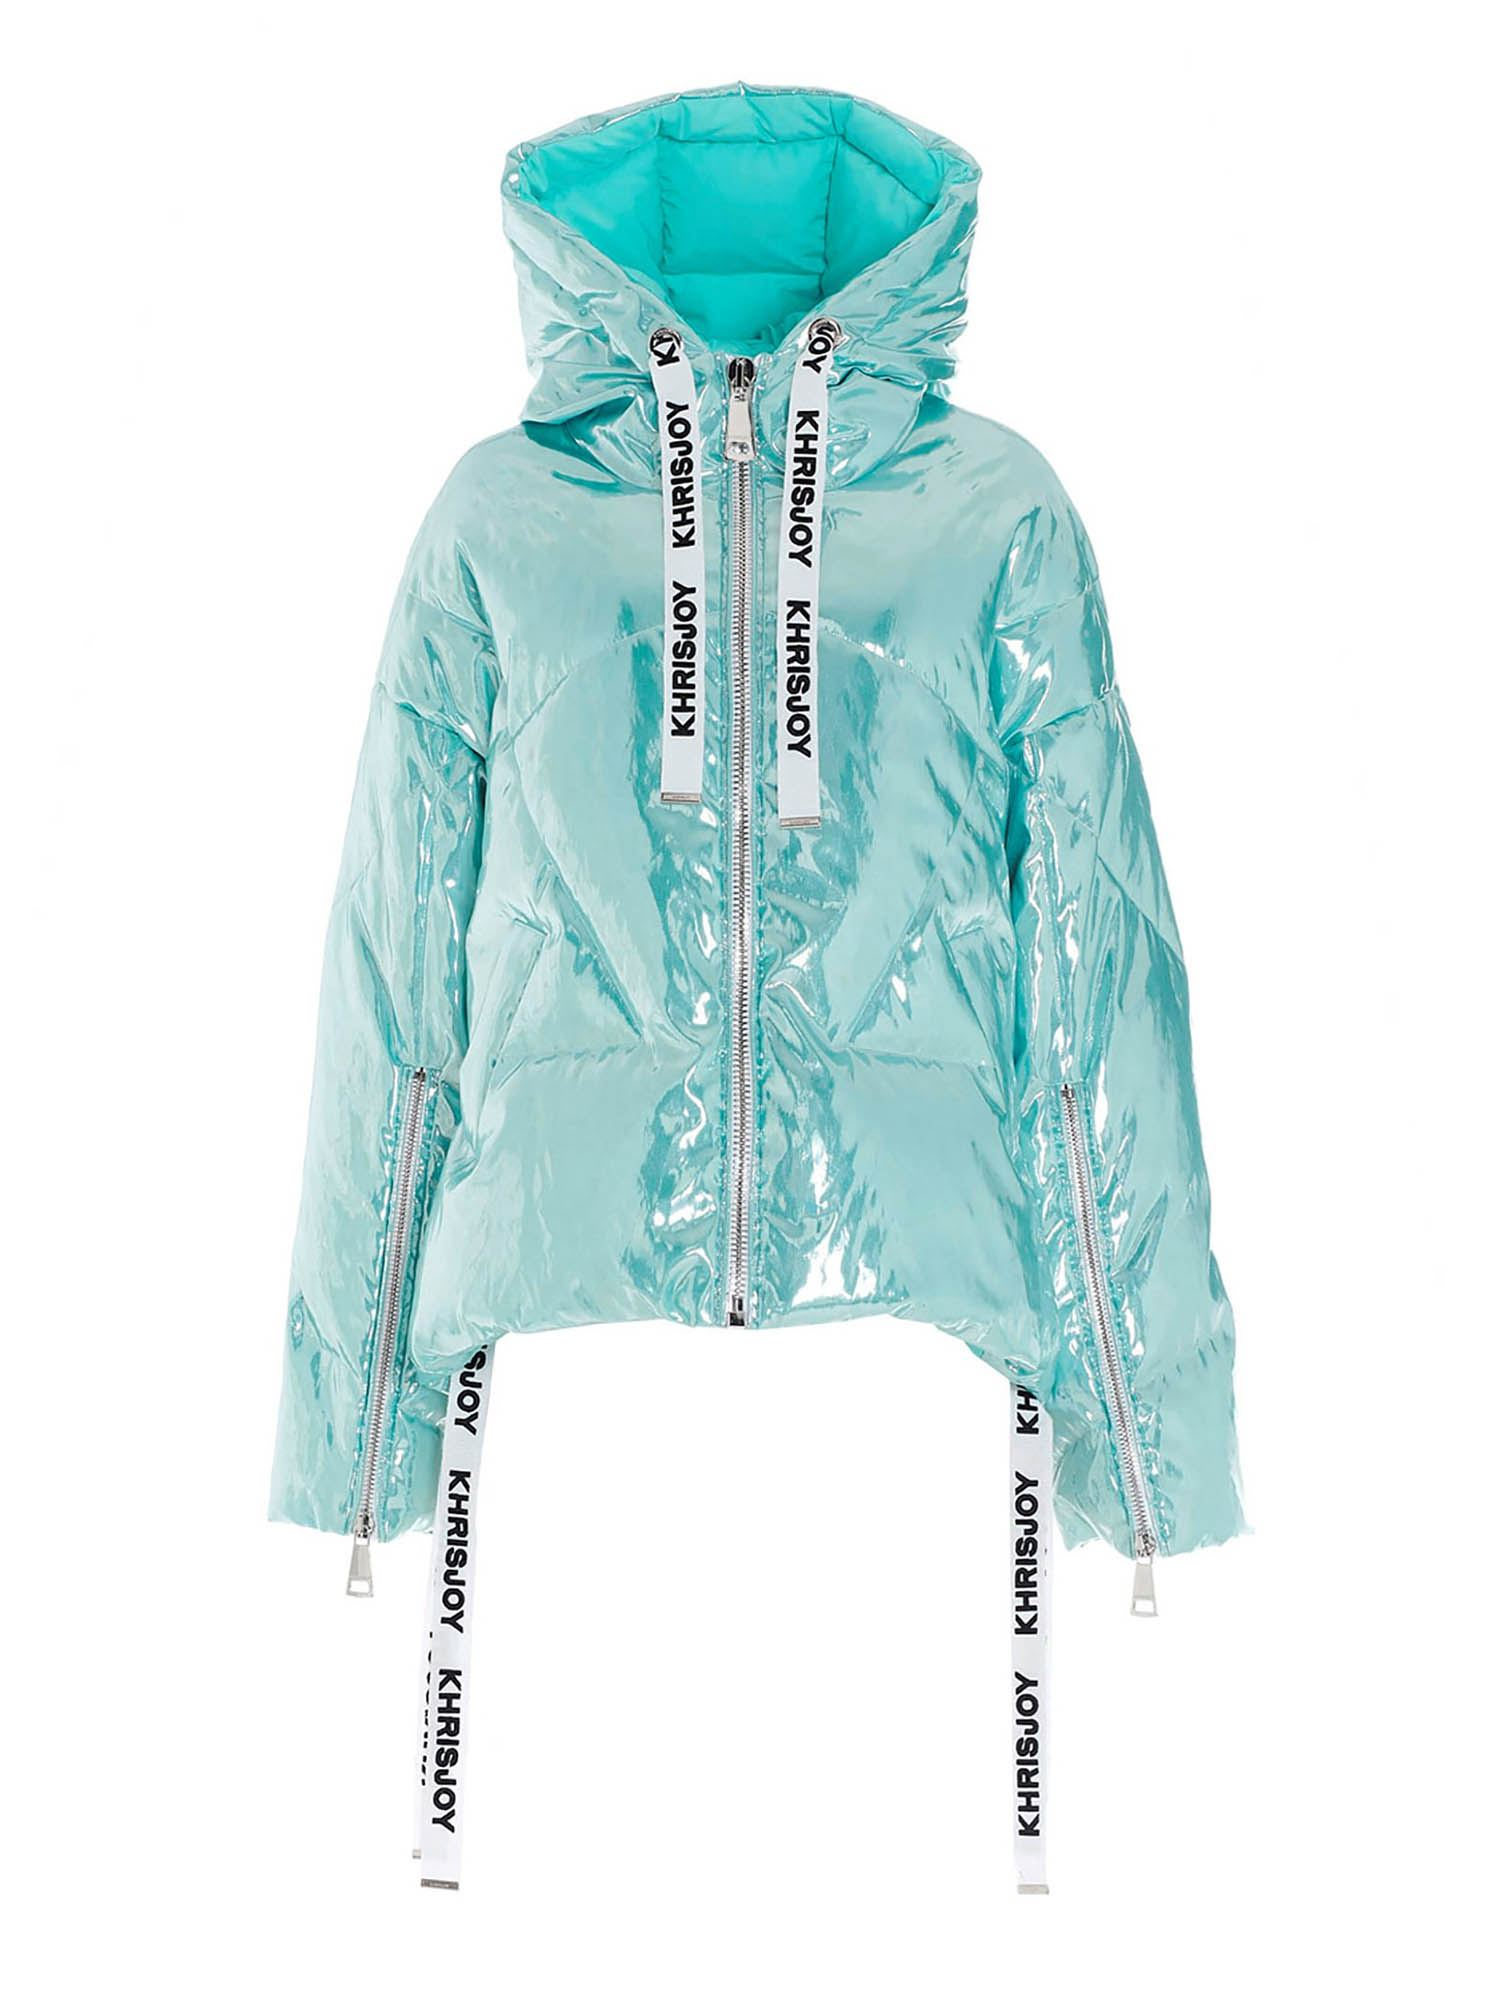 Khrisjoy Downs KHRIS LAMINATED DOWN JACKET IN LIGHT BLUE